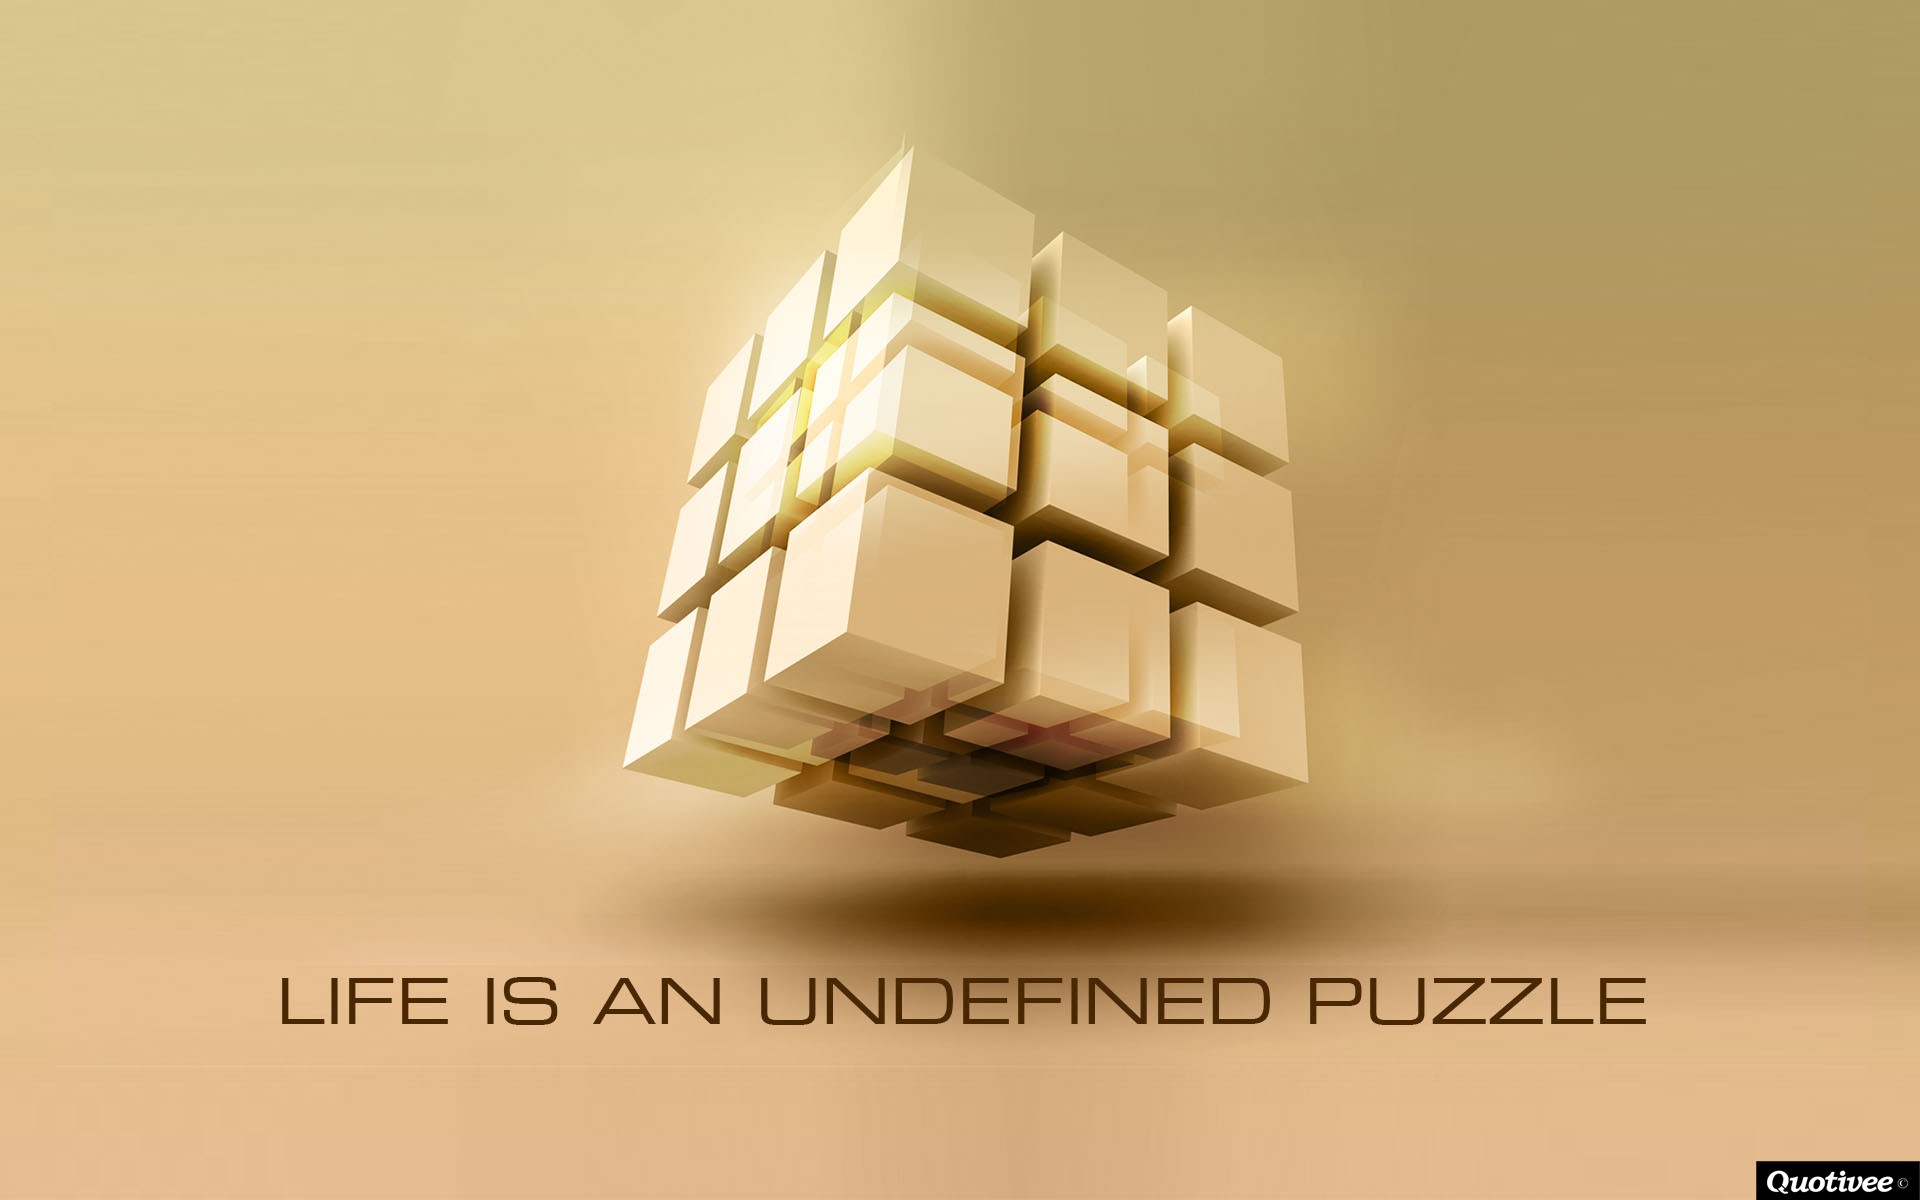 Wallpaper Quote About Life Life Is An Undefined Puzzle Inspirational Quotes Quotivee